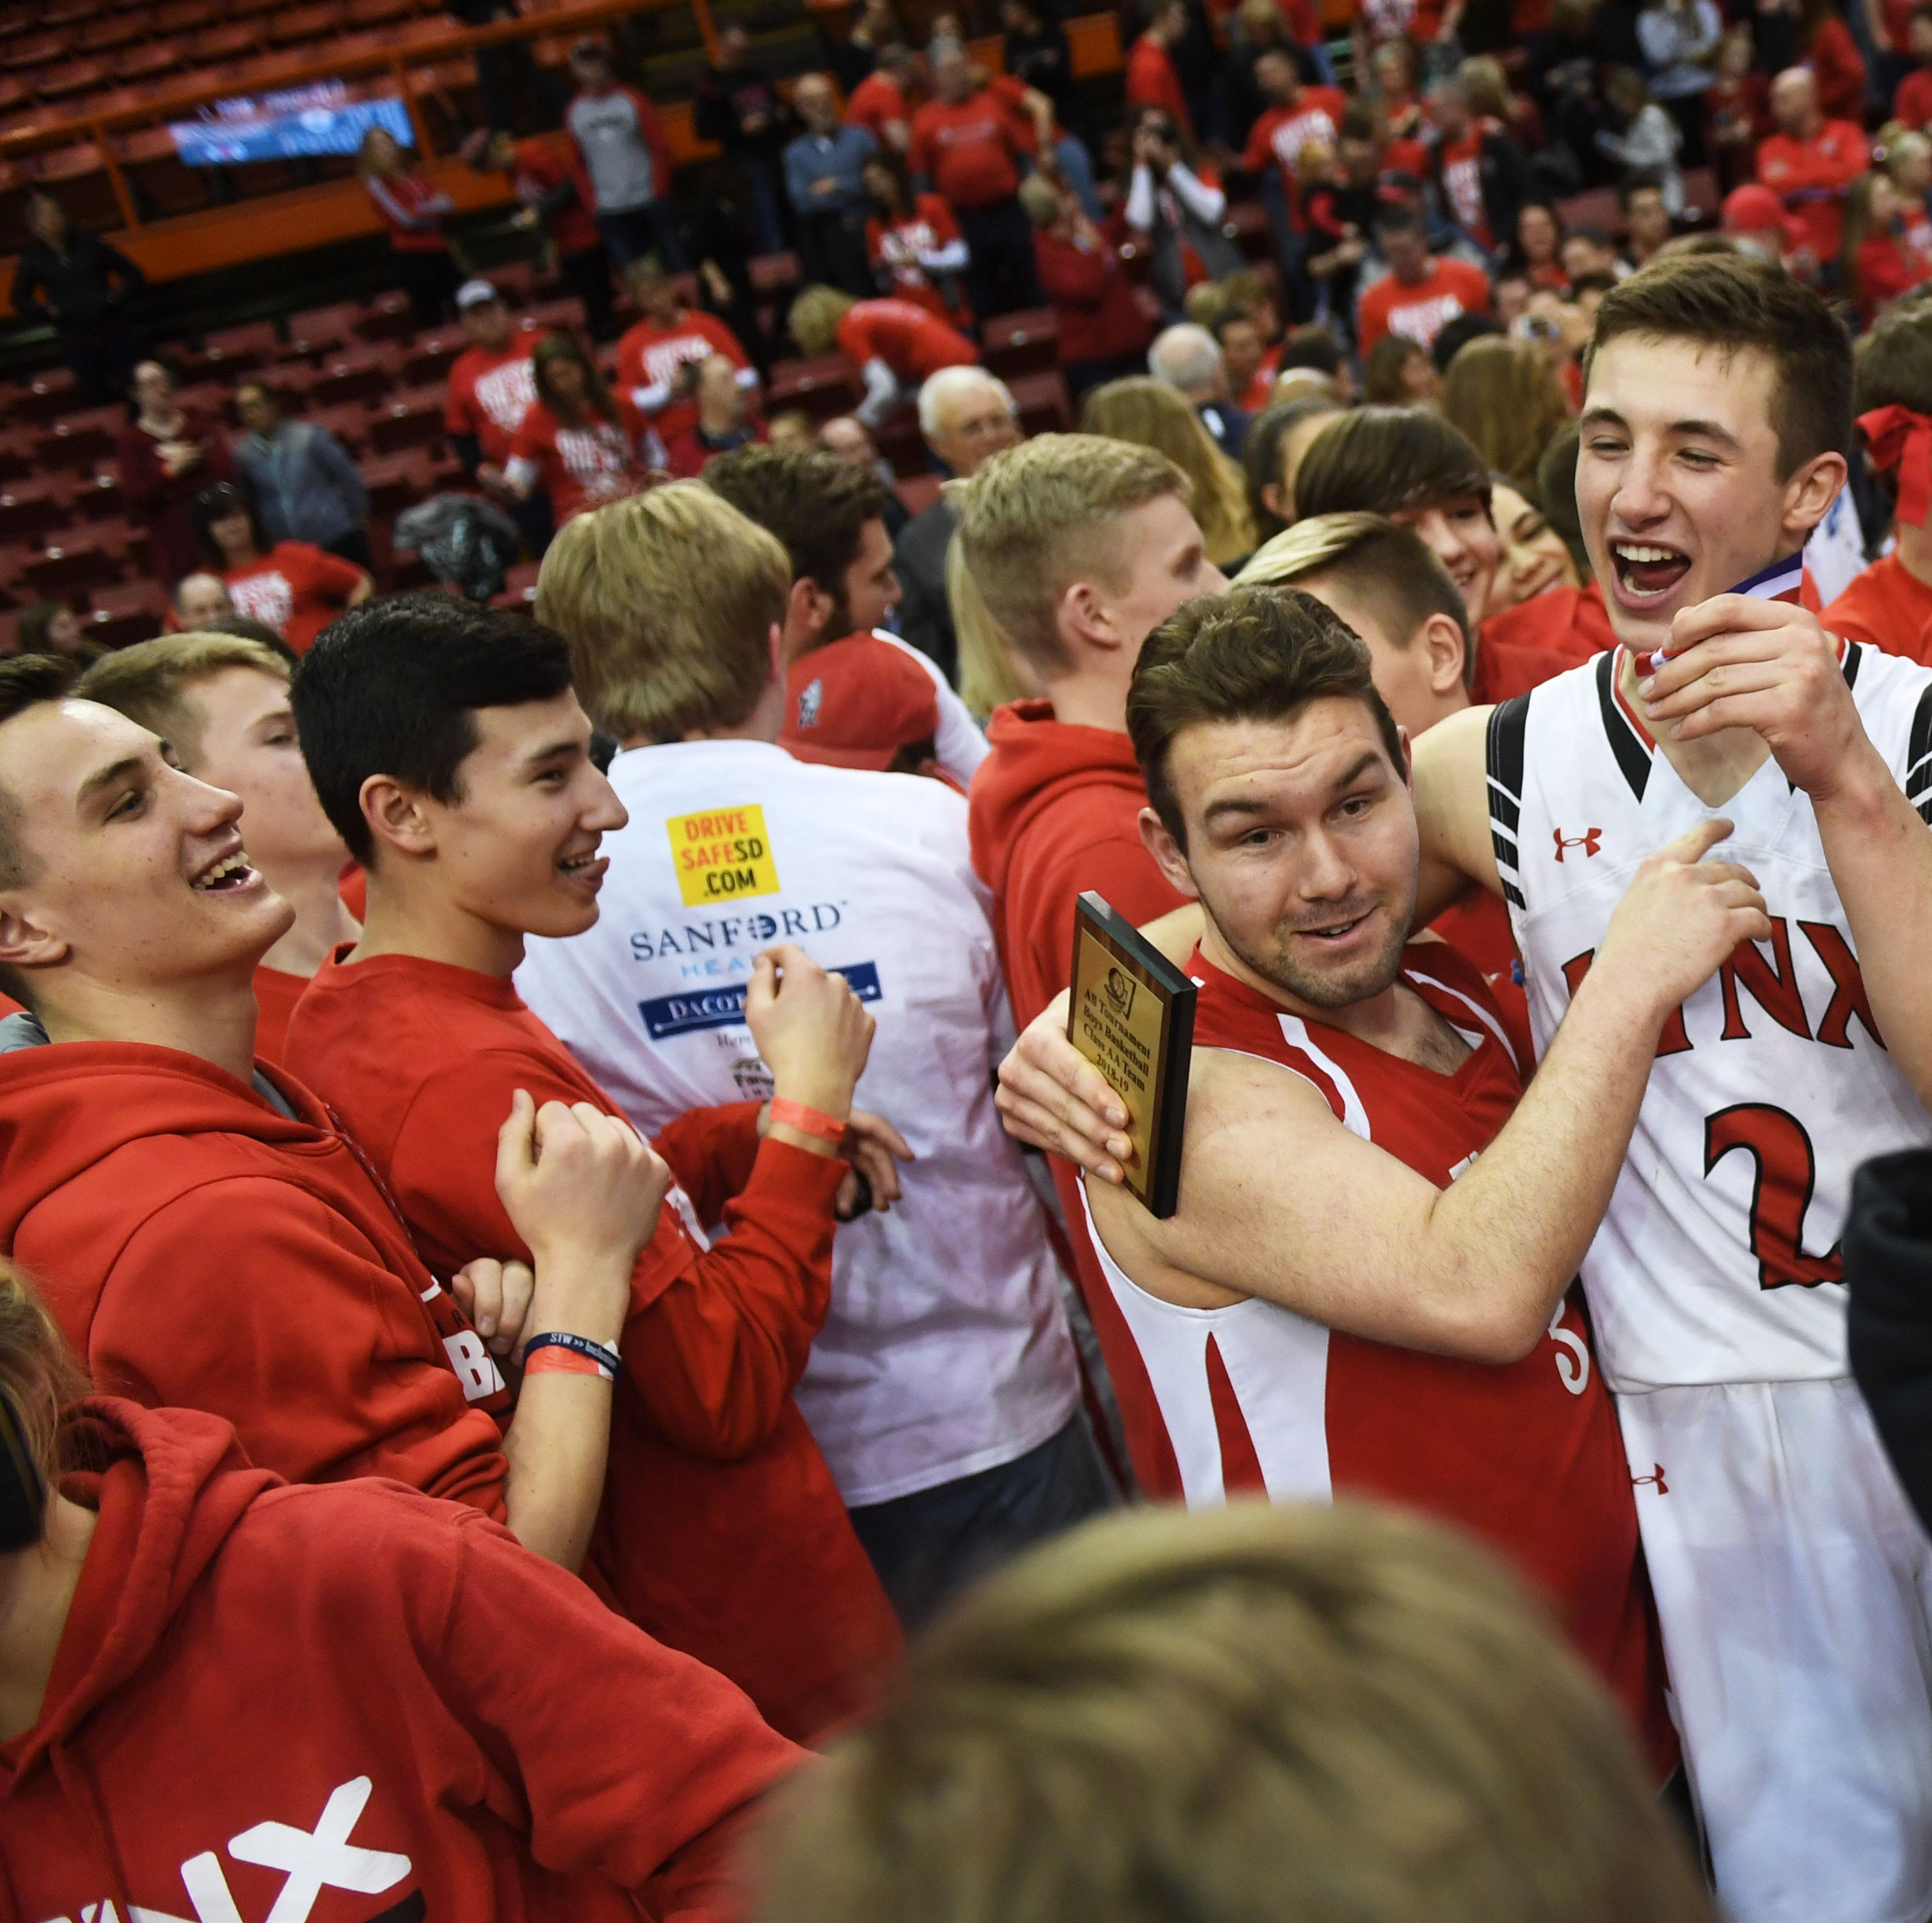 Brandon Valley boys complete Lynx sweep with win over O'Gorman